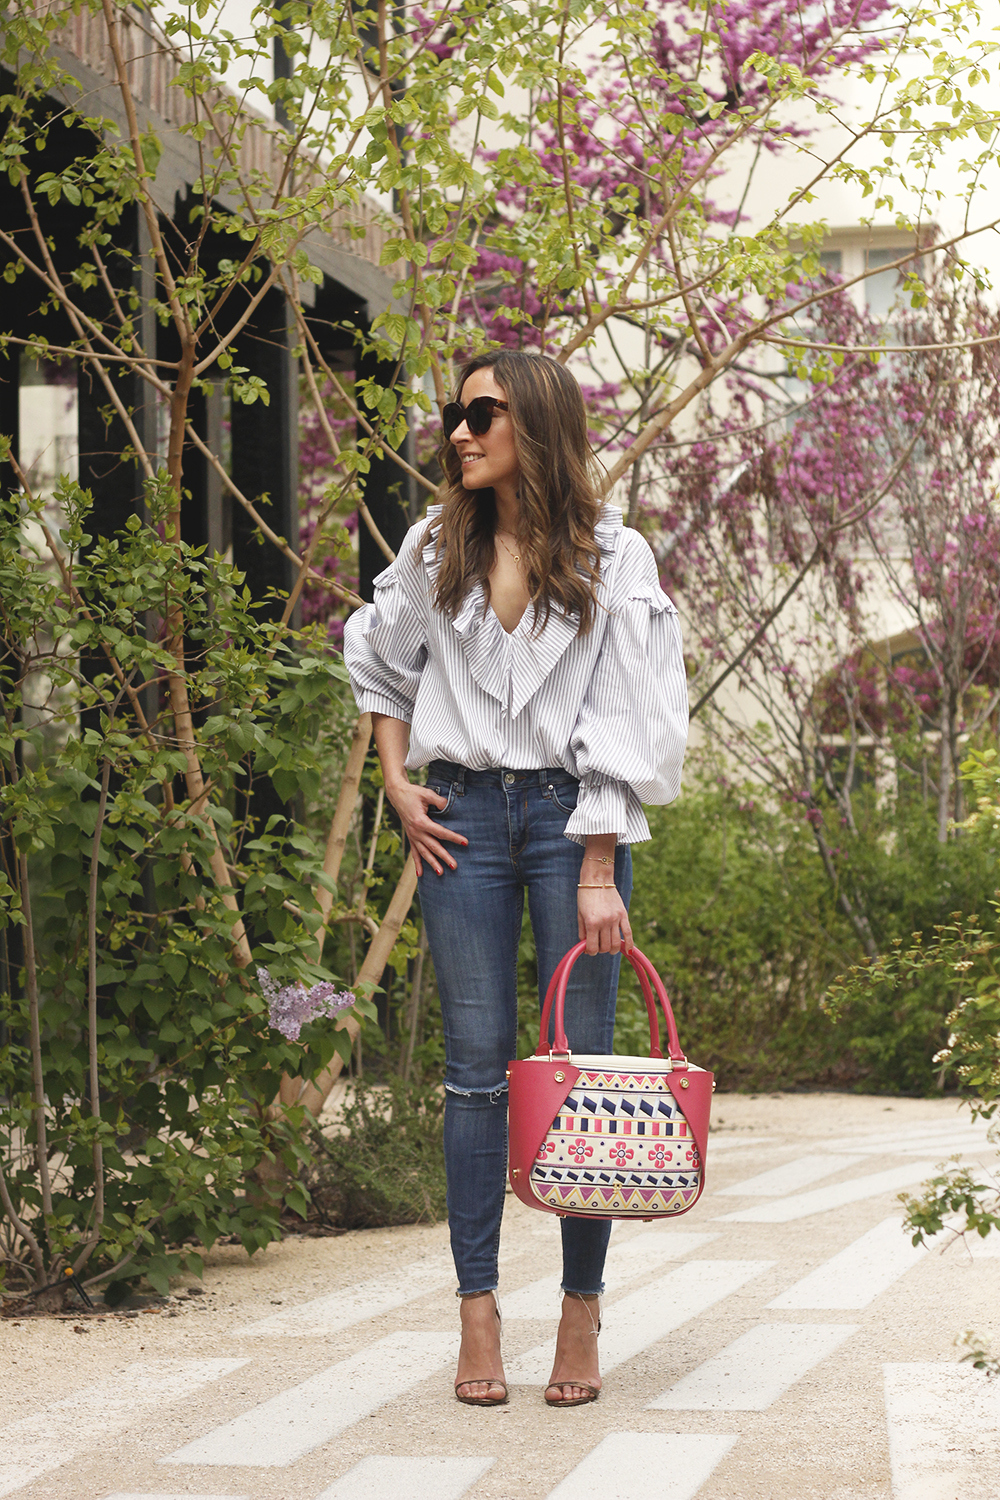 Ruffled striped shirt jeans céline sunnies sandals pamapamar bag accessories spring outfit style fashion15